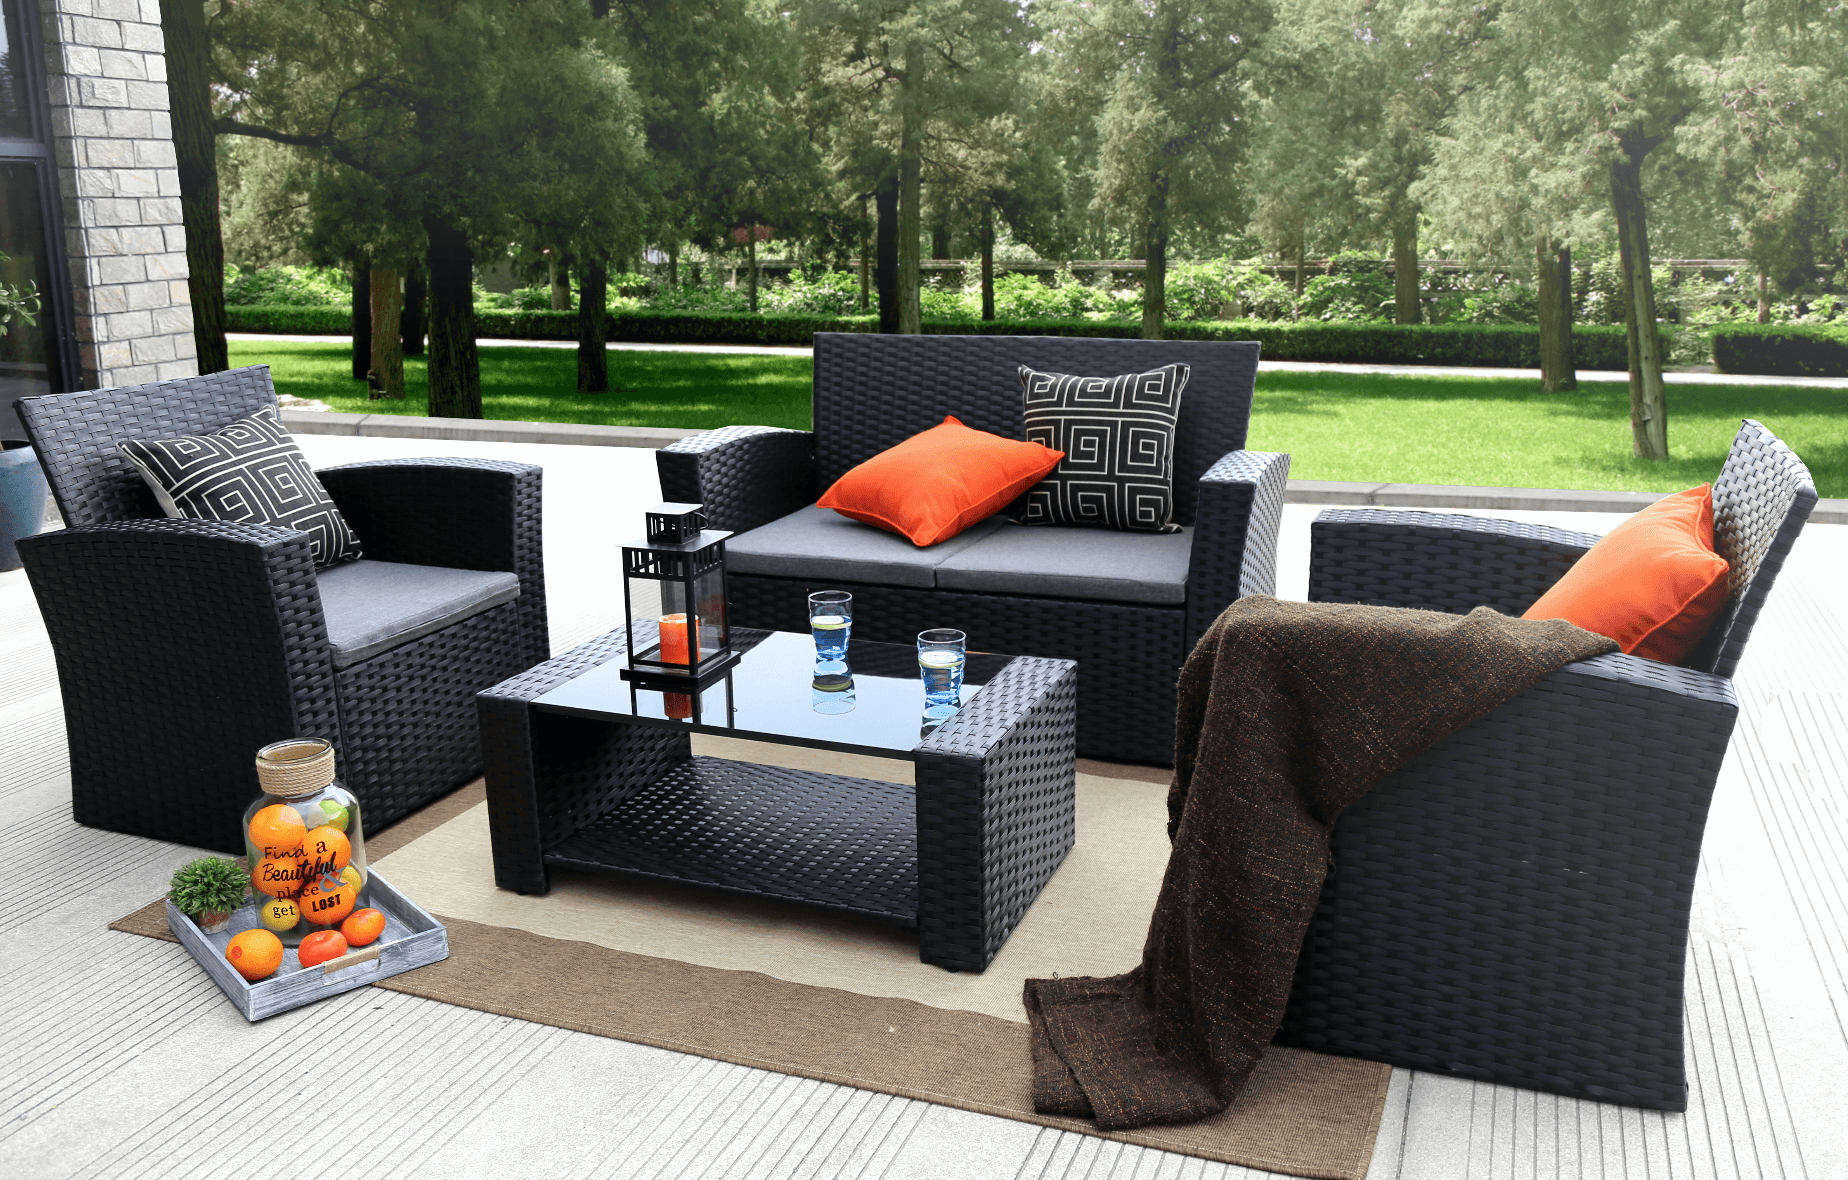 Baner Garden Complete Patio 4 Piece Rattan Wicker Conversation Set by Caesar Hardware